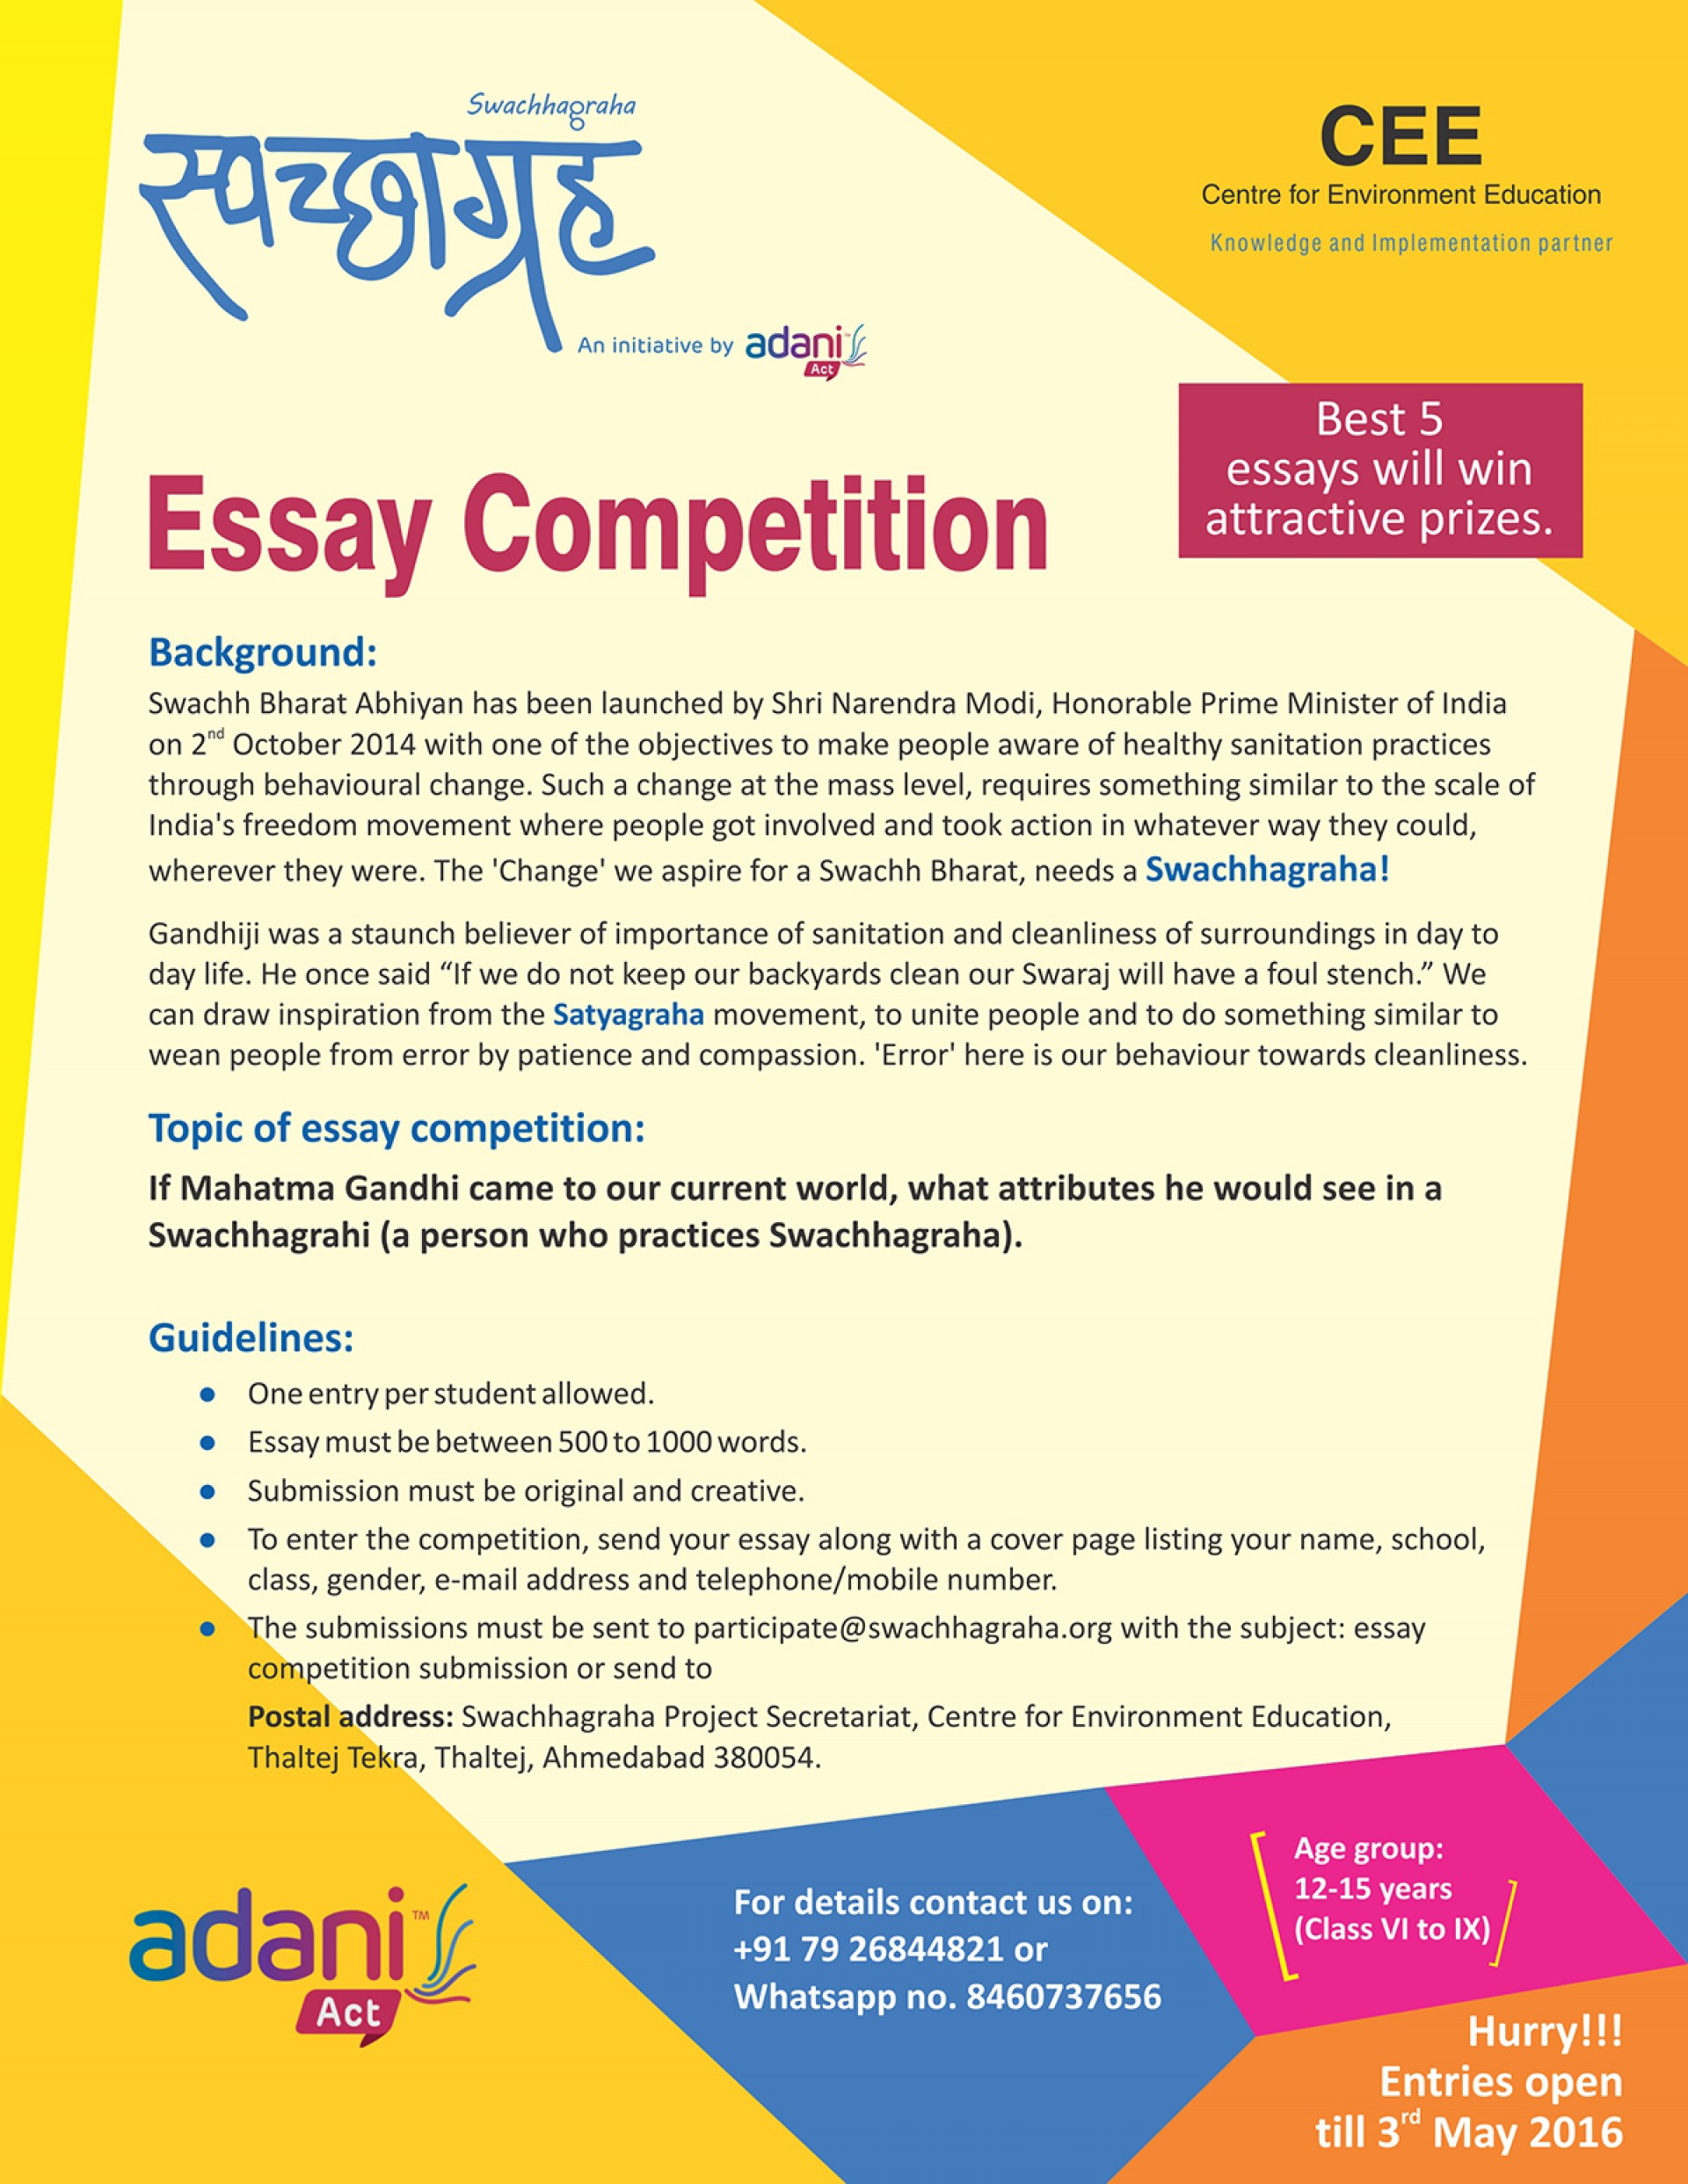 011 20180129171946essay20competition Essay About Cleanliness In School Phenomenal Campaign On Premises Toilet And Its Surrounding 1920